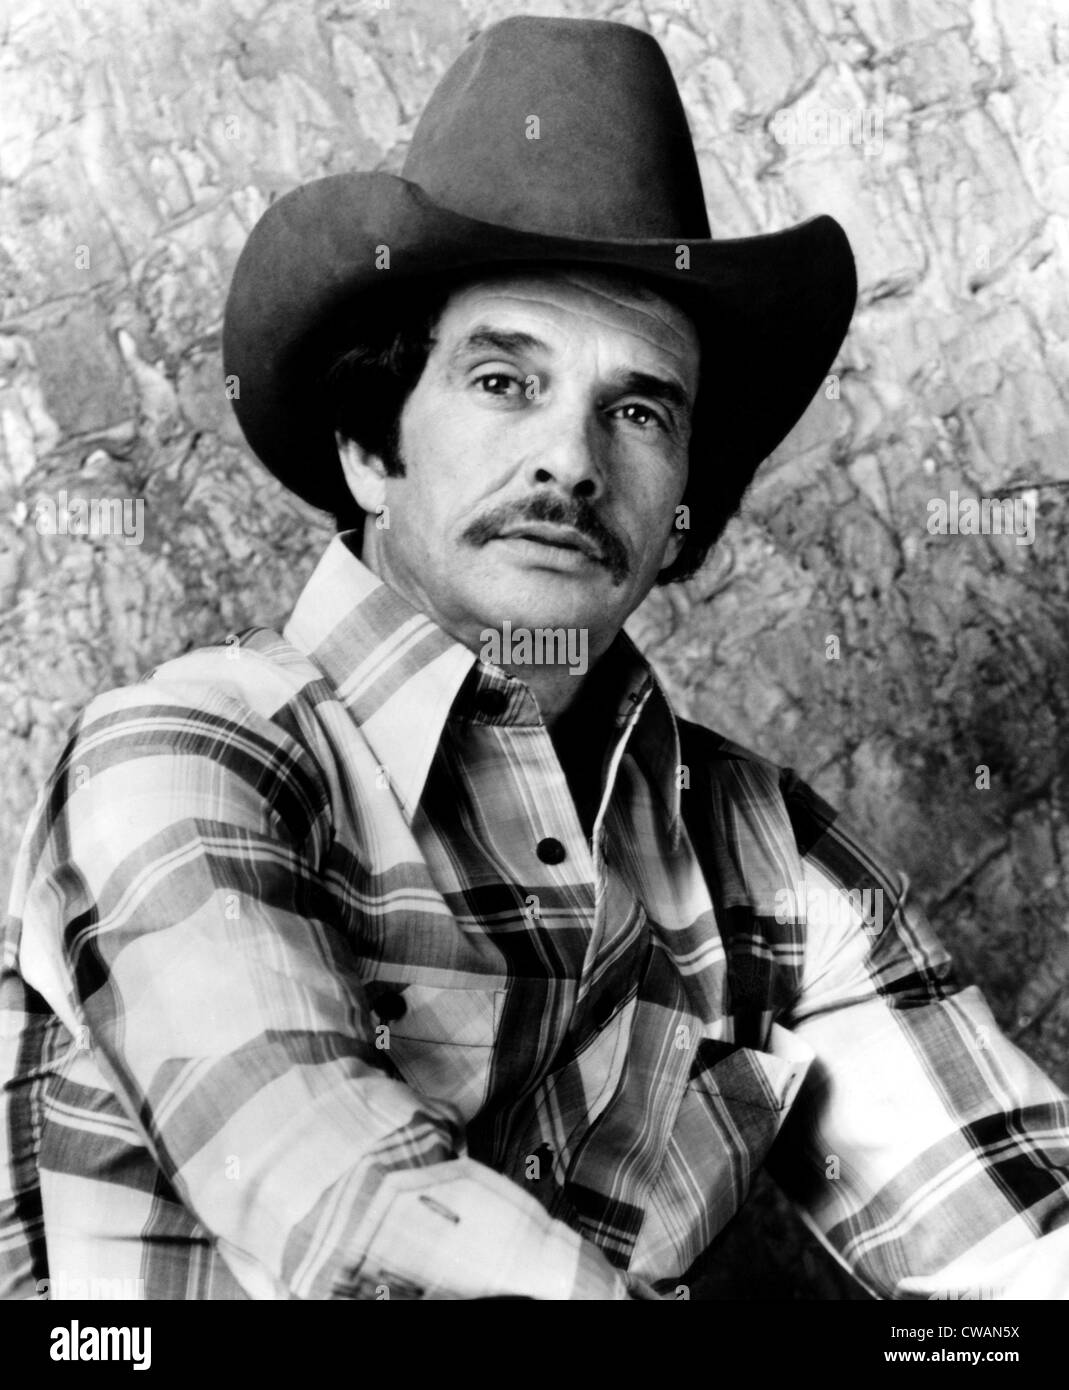 Countrysänger Merle Haggard. ca 1980. Höflichkeit: CSU Archive/Everett Collection Stockbild